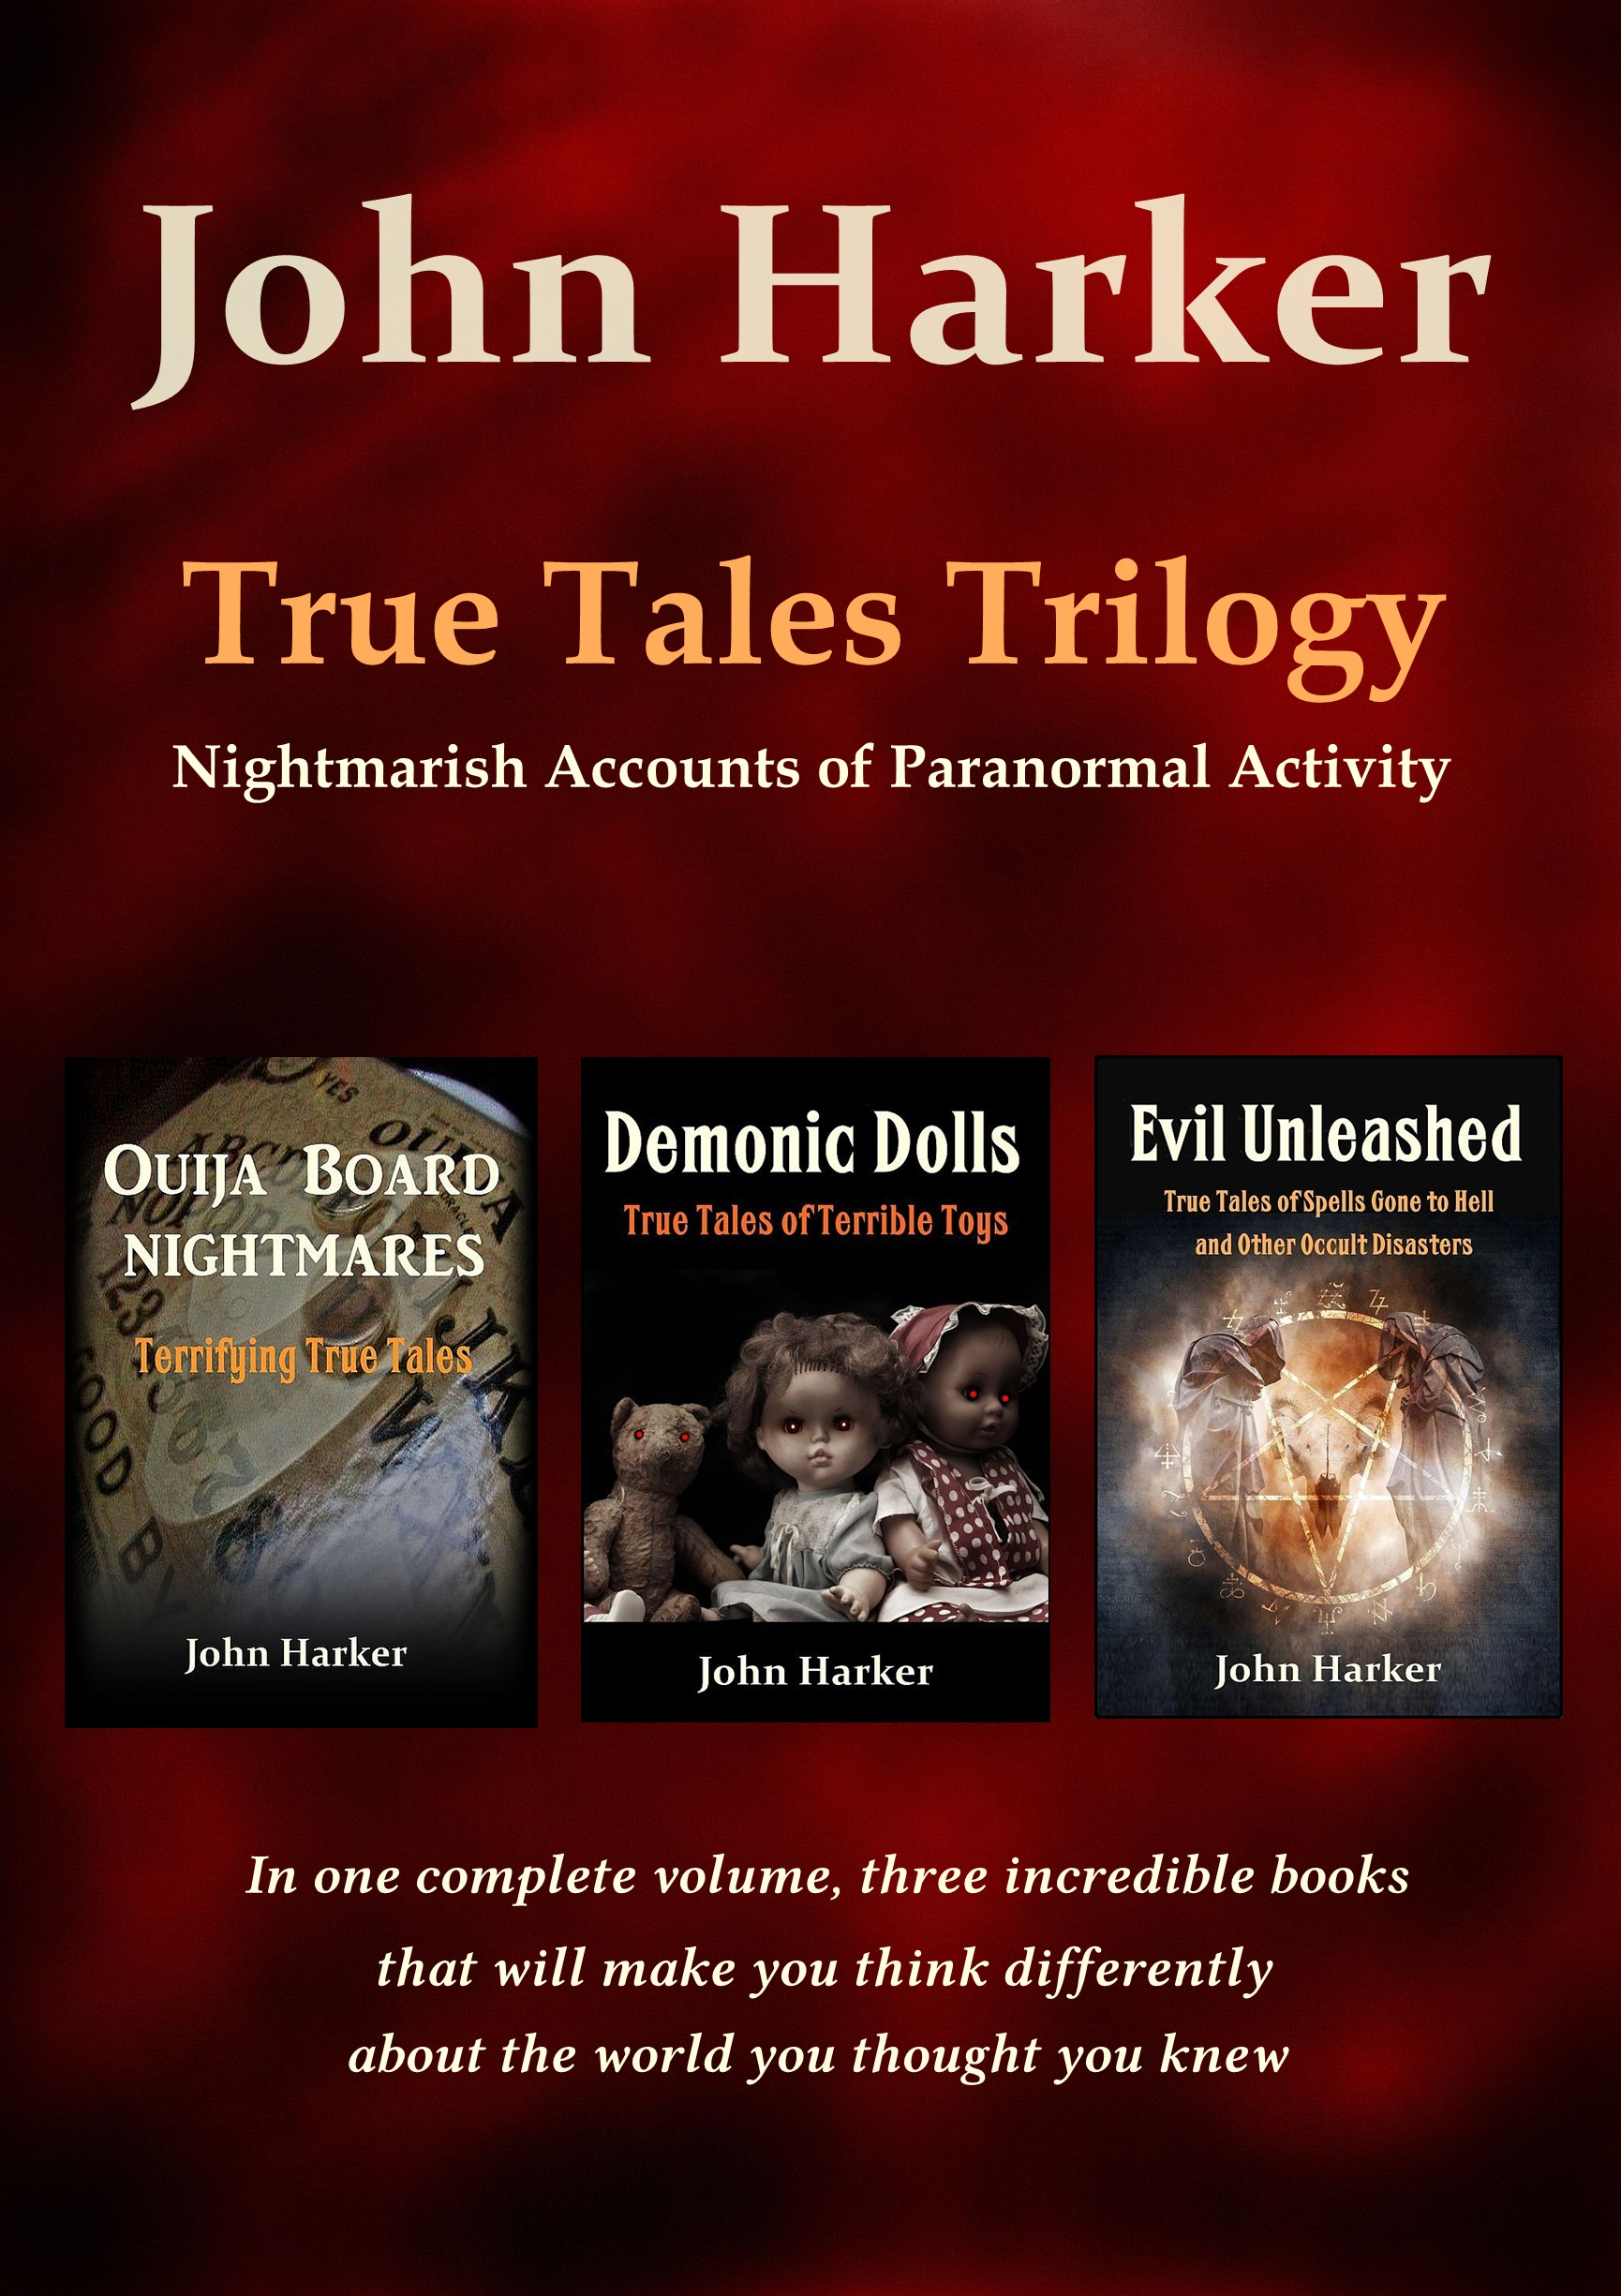 True Tales Trilogy: Nightmarish Accounts of Paranormal Activity, an Ebook  by John Harker